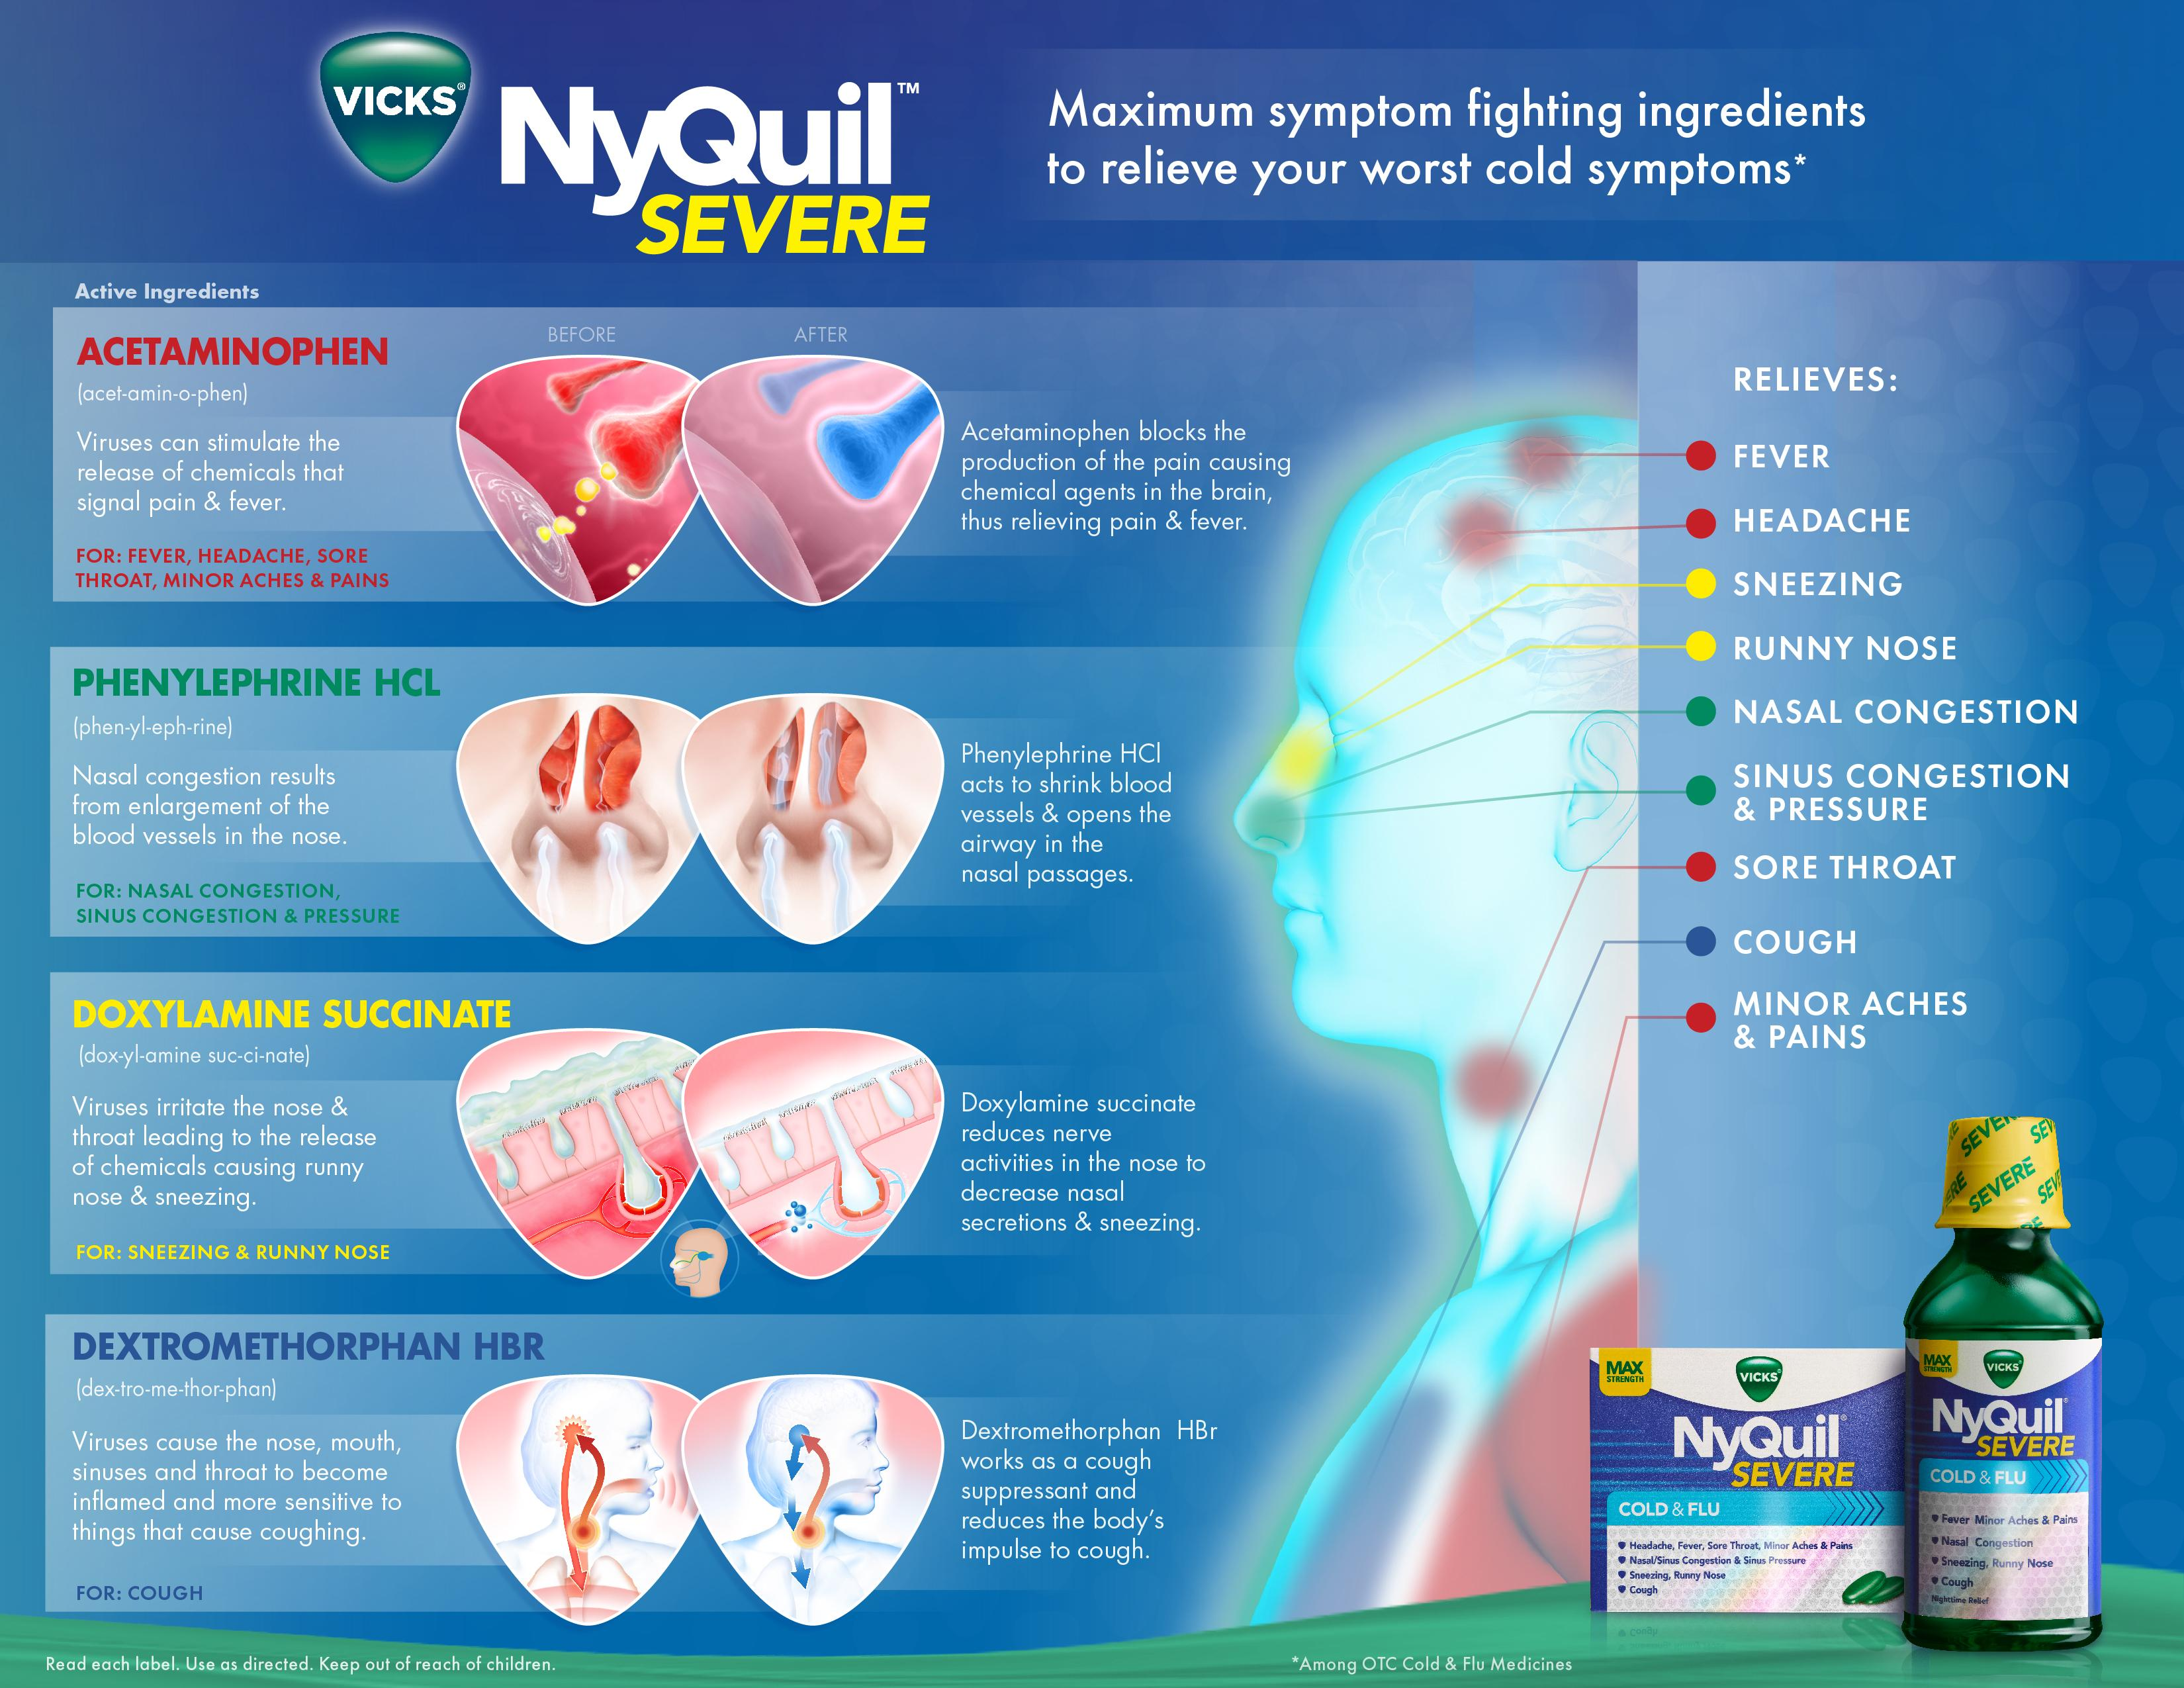 Amazon.com: Vicks NyQuil Severe Cold and Flu and DayQuil Severe Cold #13A5B8